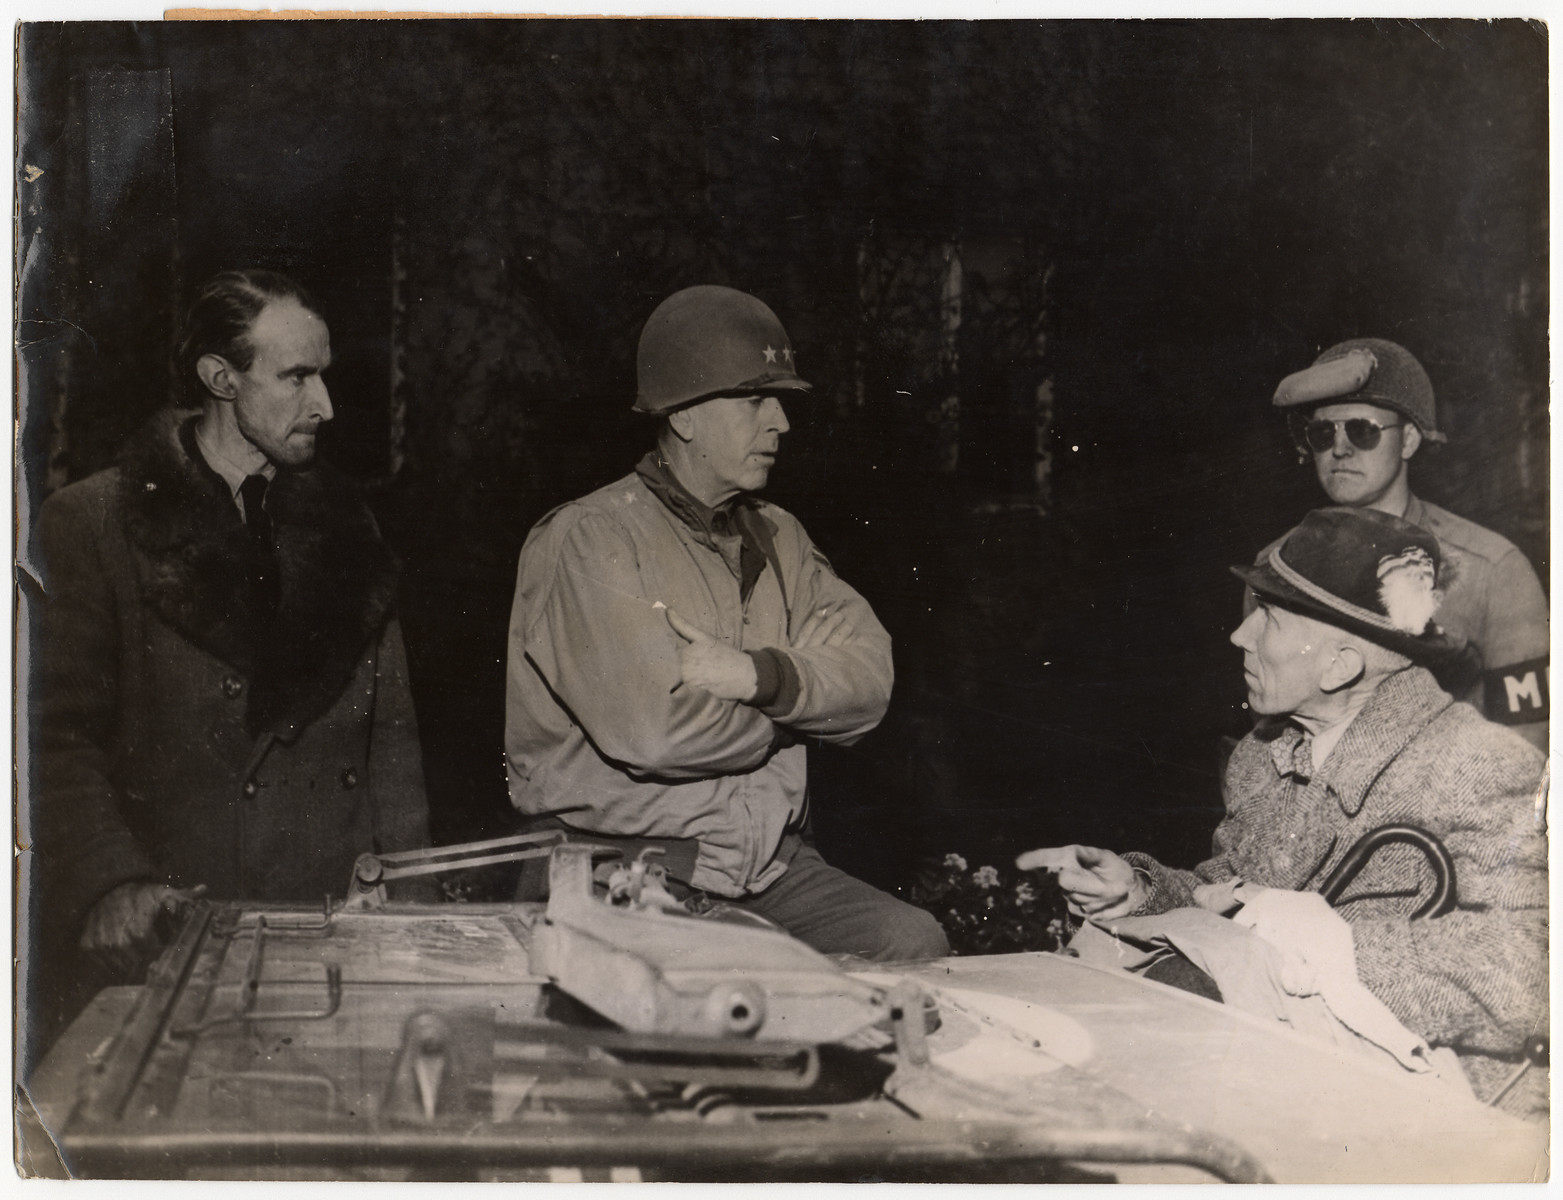 American troops capture Franz von Papen and his son.  Pictured from left to right: Captain Franz von Papen Jr., Major General Harry L. Twaddle, commanding general of the 95th Division of the 9th U.S. Army. and von Papen (in jeep). In the background is a U.S. Army military policeman.  Original caption reads :Franz von Papen Captured By U.S. Troops Count Franz von Papen, 67 year old German diplomat and Chancellor of the Reich before the Nazi regime, for which he became an outstanding ambassador and negotiator, was captured April 10, 1945, by troops of the 194th Glider Infantry Regiment of the 17th U.S Airborne Division in a hunting lodge of a baronial estate at Stockhausen near Hirschberg, 30 miles southeast of Hamm in the Ruhr area, during operations of the 9th U.S. Army to clear up the Ruhr pocket.""